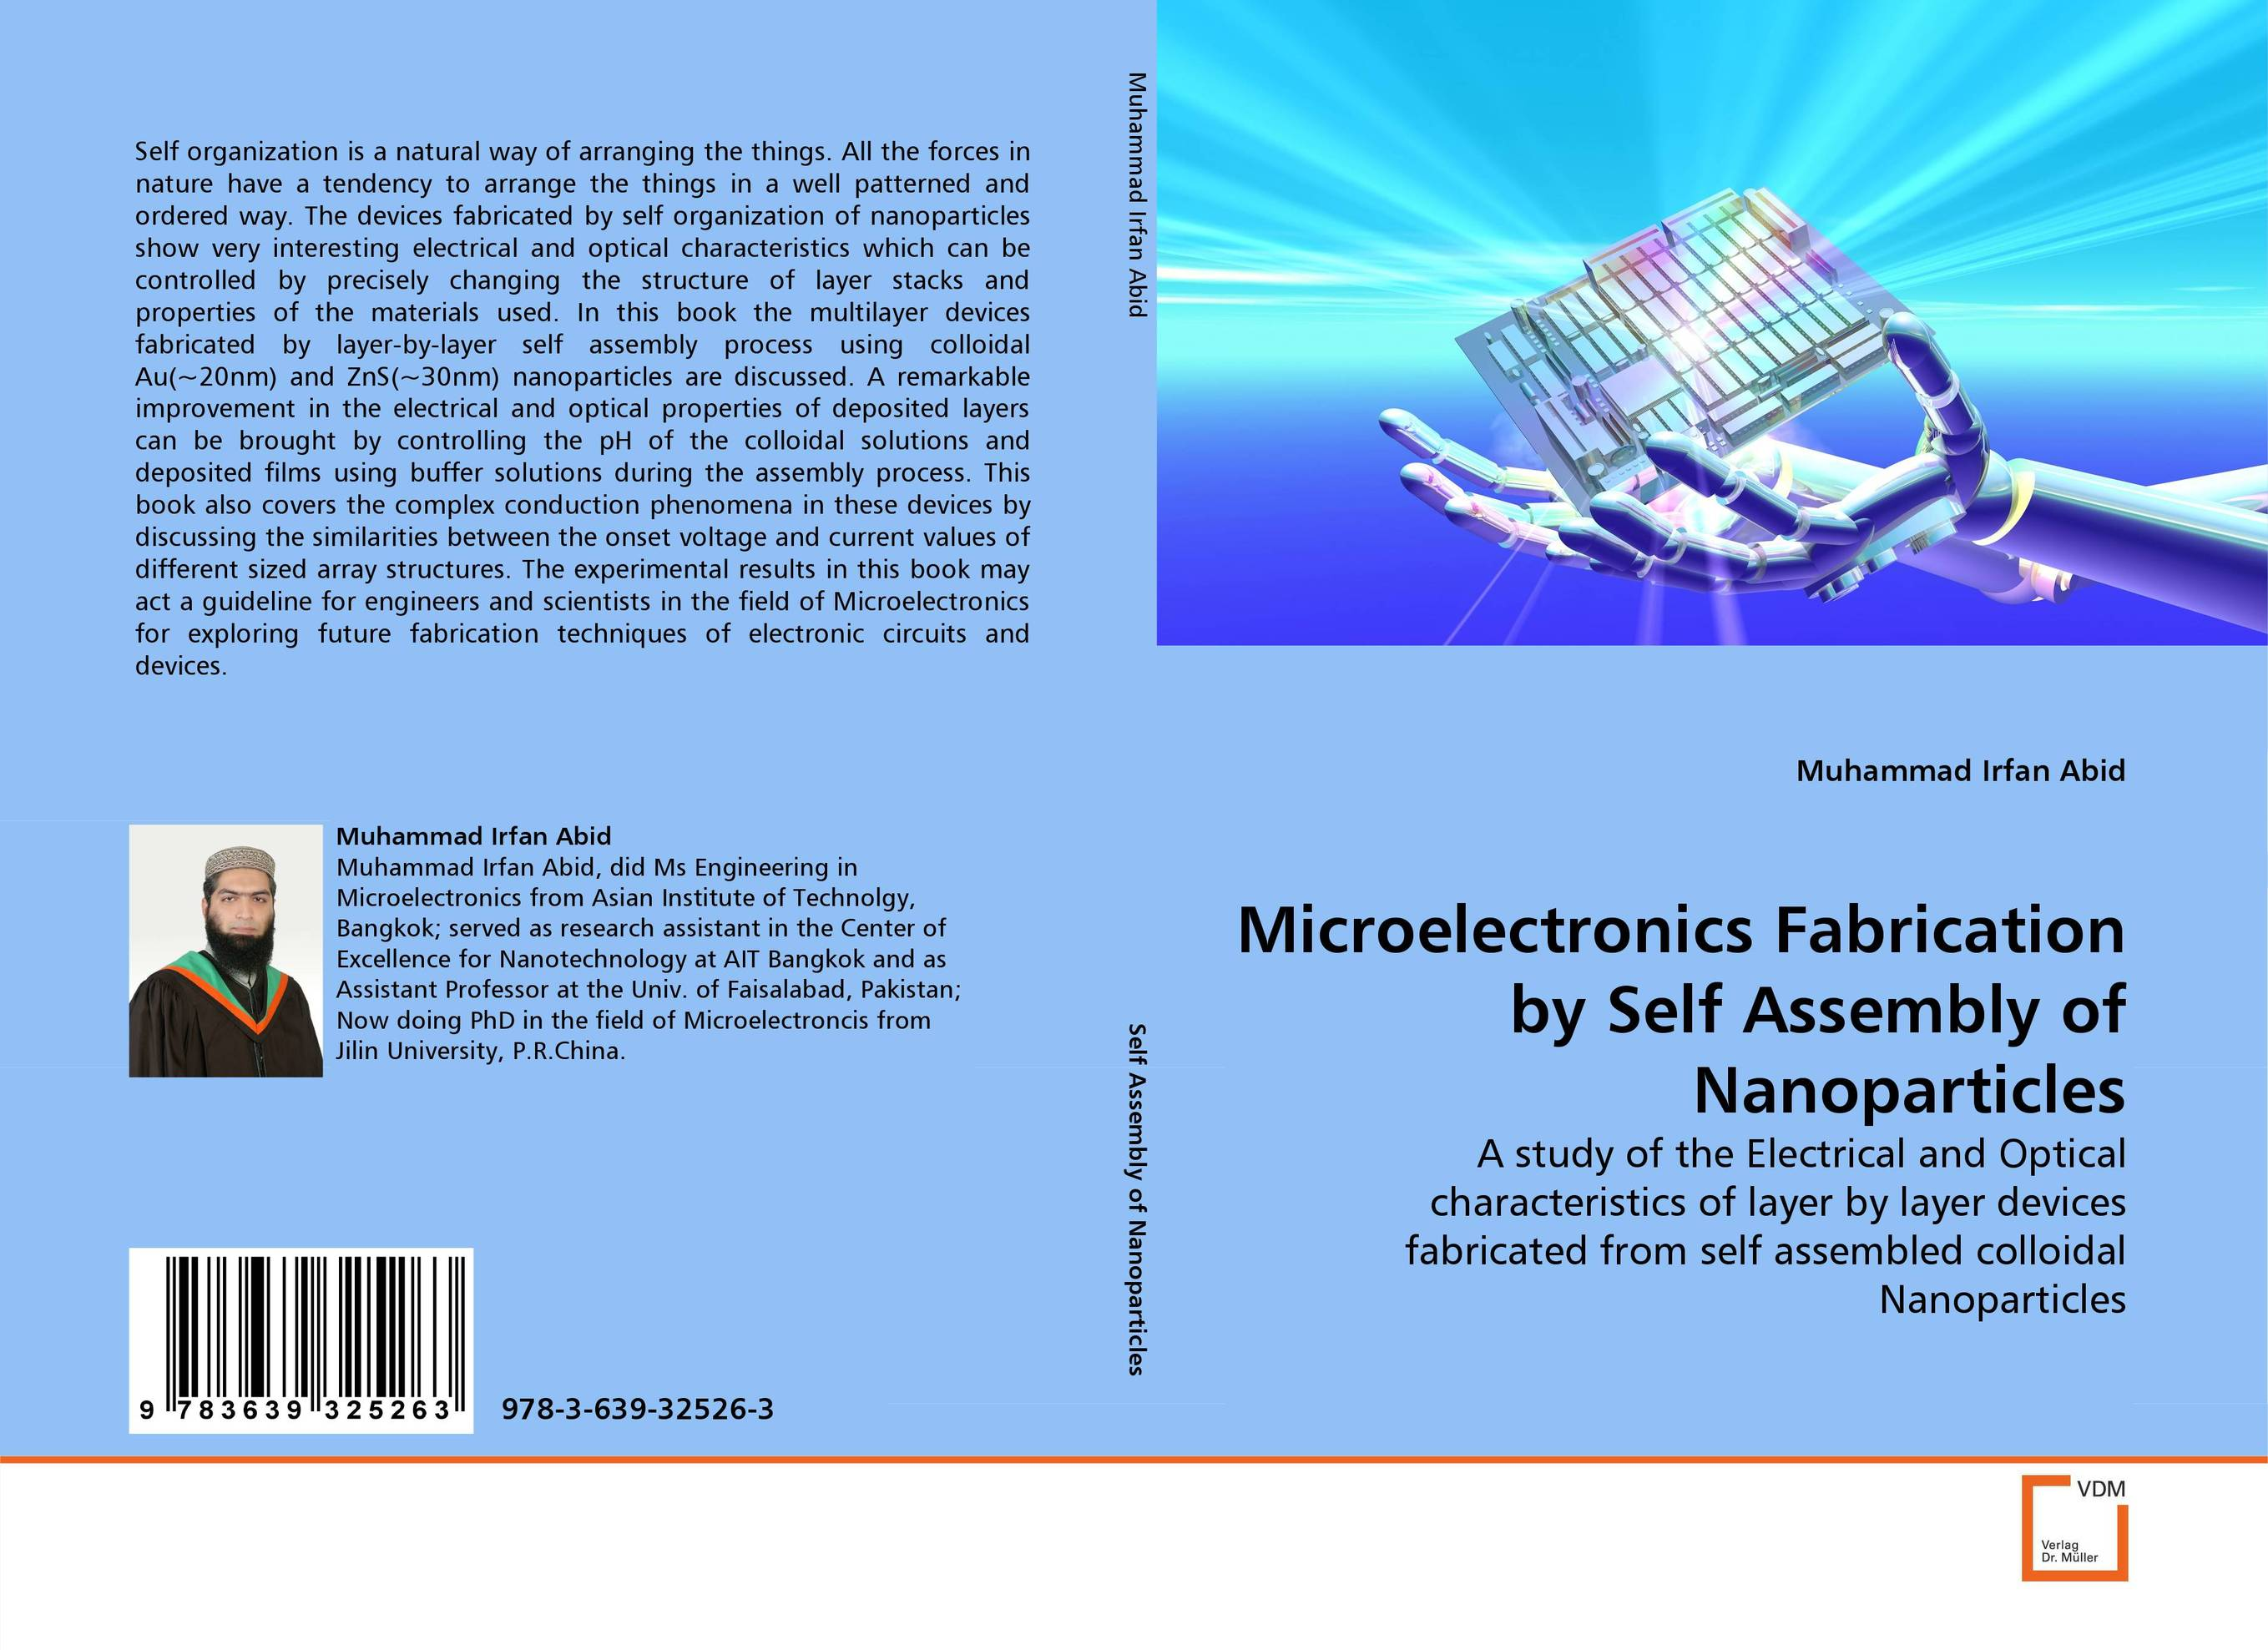 Microelectronics Fabrication by Self Assembly of Nanoparticles j greer nano and giga challenges in microelectronics